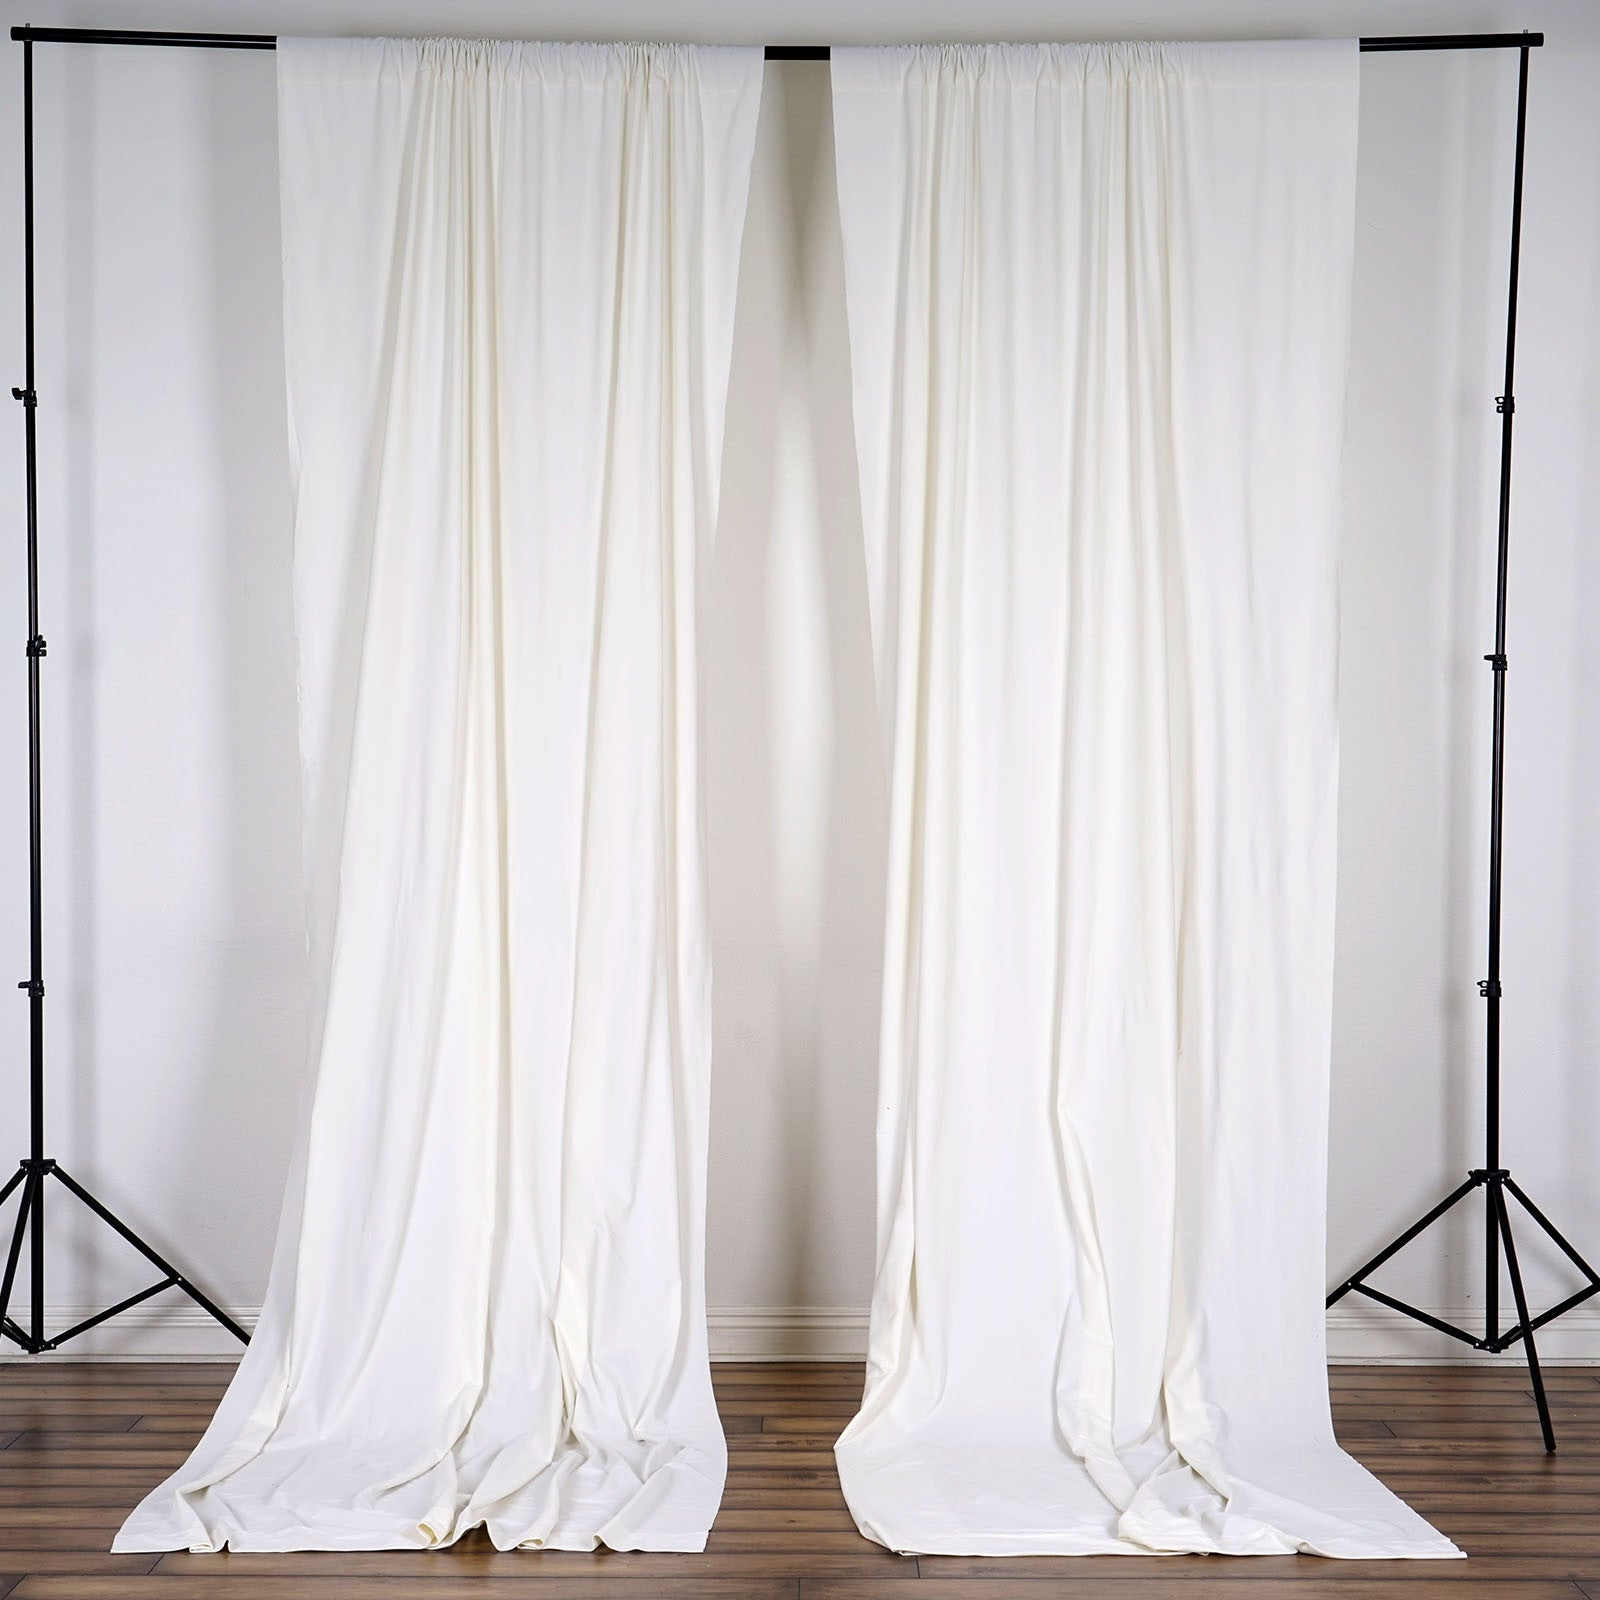 pocket price curtain panels window half pdx drapes curtains ivory silk tunisia rod single embroidered treatments faux geometric panel